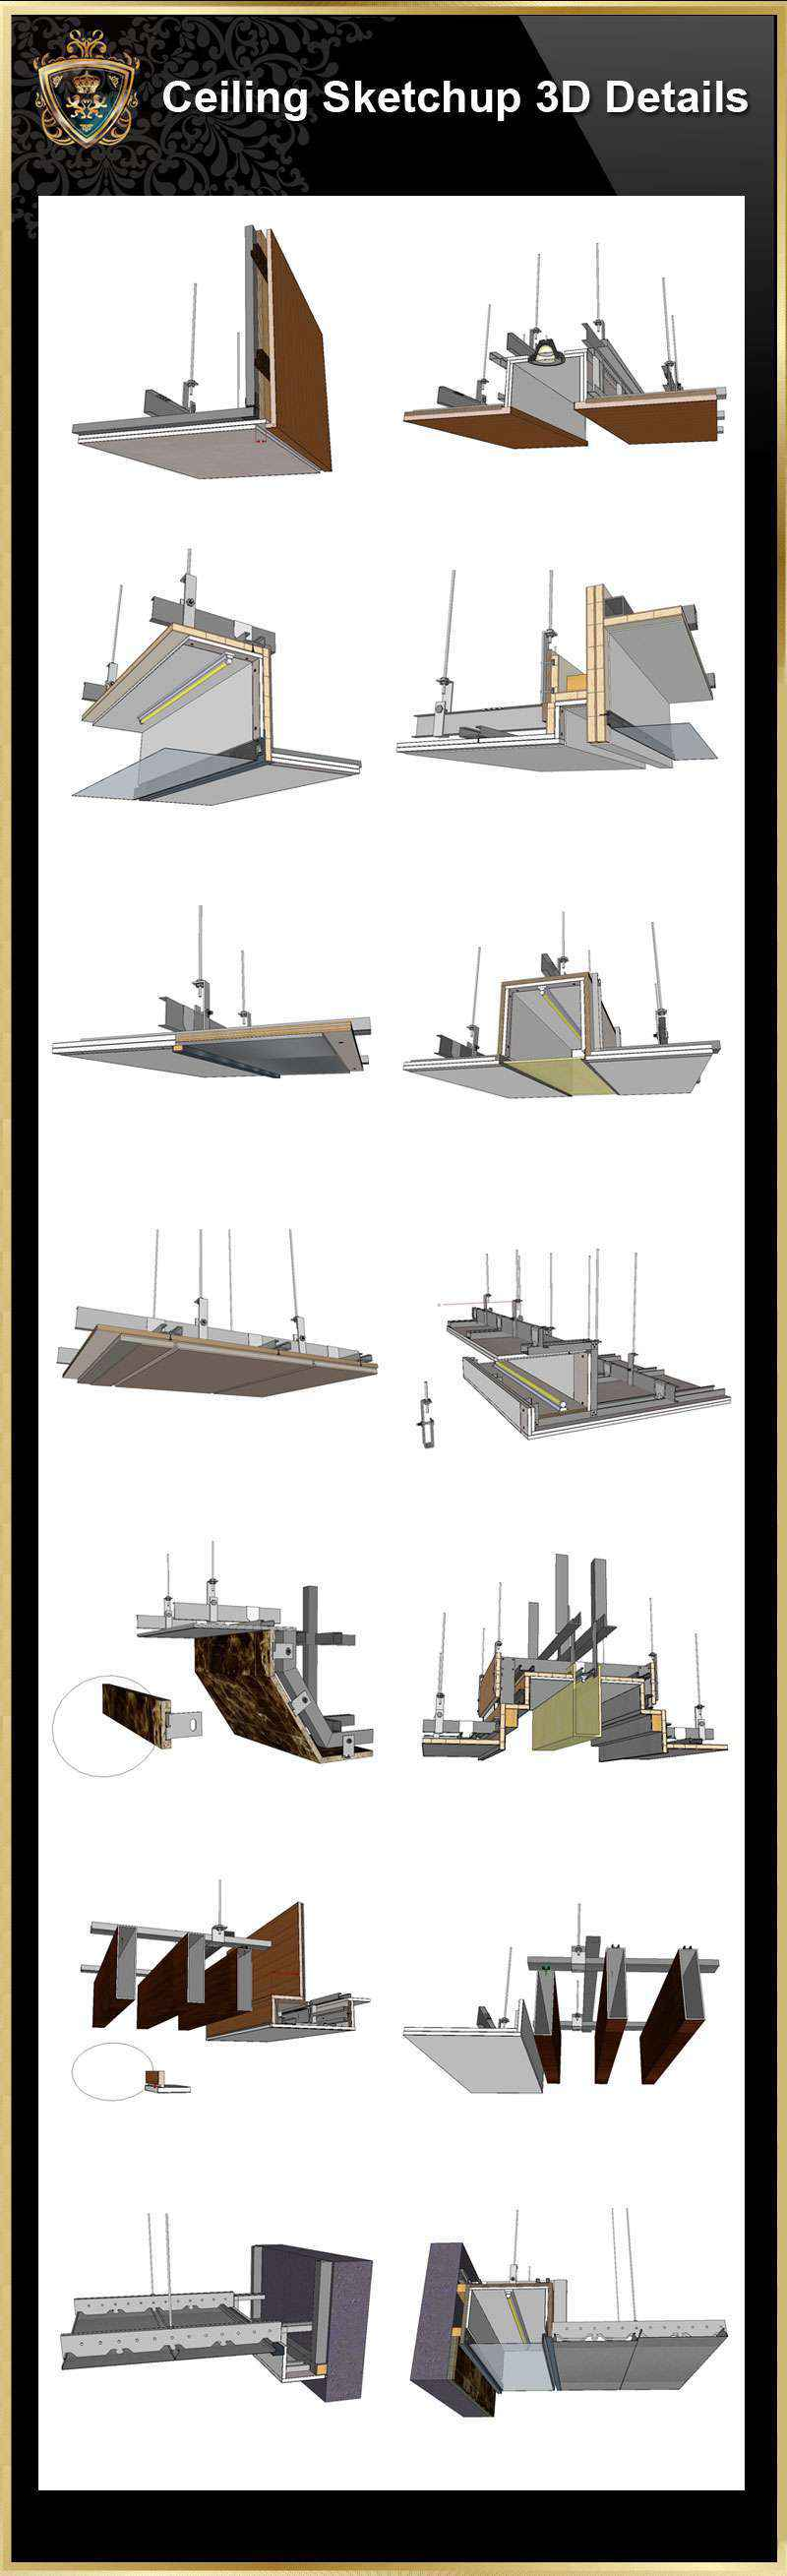 【Best 70 Types Ceiling Sketchup 3D Detail Models】 (★Recommanded★)(*.skp file format). ThisSketchup 3D CAD modelscollection can be used in your 3D design drawings(Sketchup,Autocad,3D max,Revit).  Download Best 70 Types Ceiling Sketchup 3D Detail Models(*.skp file format). This Sketchup 3D models collection can be used in your 3D design software(Sketchup,Autocad,3D max,Revit).Downloading 3D Sketchup Models to fuel your creative pursuits.      Include the followings sketchup 3D Models: Sketchup Ceiling Details-01-light steel frame ceiling - hard cover ceiling.skp Sketchup Ceiling Details-01-plasterboard ceiling .skp Sketchup Ceiling Details-02-plasterboard ceiling - gold and silver foil ceiling .skp Sketchup Ceiling Details-02-plasterboard ceiling - sewed ceiling.skp Sketchup Ceiling Details-03-plasterboard ceiling - Malay paint, diatom mud.skp Sketchup Ceiling Details-03-plasterboard ceiling-mirror ceiling.skp Sketchup Ceiling Details-04-stainless steel ceiling.skp Sketchup Ceiling Details-04-wood veneer ceiling.skp Sketchup Ceiling Details-05-mineral wool board ceiling-1.skp Sketchup Ceiling Details-05-mineral wool board ceiling-2.skp Sketchup Ceiling Details-06-calcium silicate board ceiling.skp Sketchup Ceiling Details-06-mineral wool board ceiling.skp Sketchup Ceiling Details-07-air conditioning duct.skp Sketchup Ceiling Details-07-glass ceiling.skp Sketchup Ceiling Details-08-air conditioning duct.skp Sketchup Ceiling Details-08-glass partition.skp Sketchup Ceiling Details-09-plasterboard ceiling ceiling connect with stone 2.skp Sketchup Ceiling Details-09-plasterboard ceiling connect with stone 1.skp Sketchup Ceiling Details-10-plasterboard ceiling ceiling connect with glass.skp Sketchup Ceiling Details-10-smoke blocking wall.skp Sketchup Ceiling Details-11-plasterboard ceiling is connected to aluminum plate 1.skp Sketchup Ceiling Details-11-plasterboard ceiling is connected to aluminum plate 2.skp Sketchup Ceiling Details-12-plasterboard ceiling is connected to